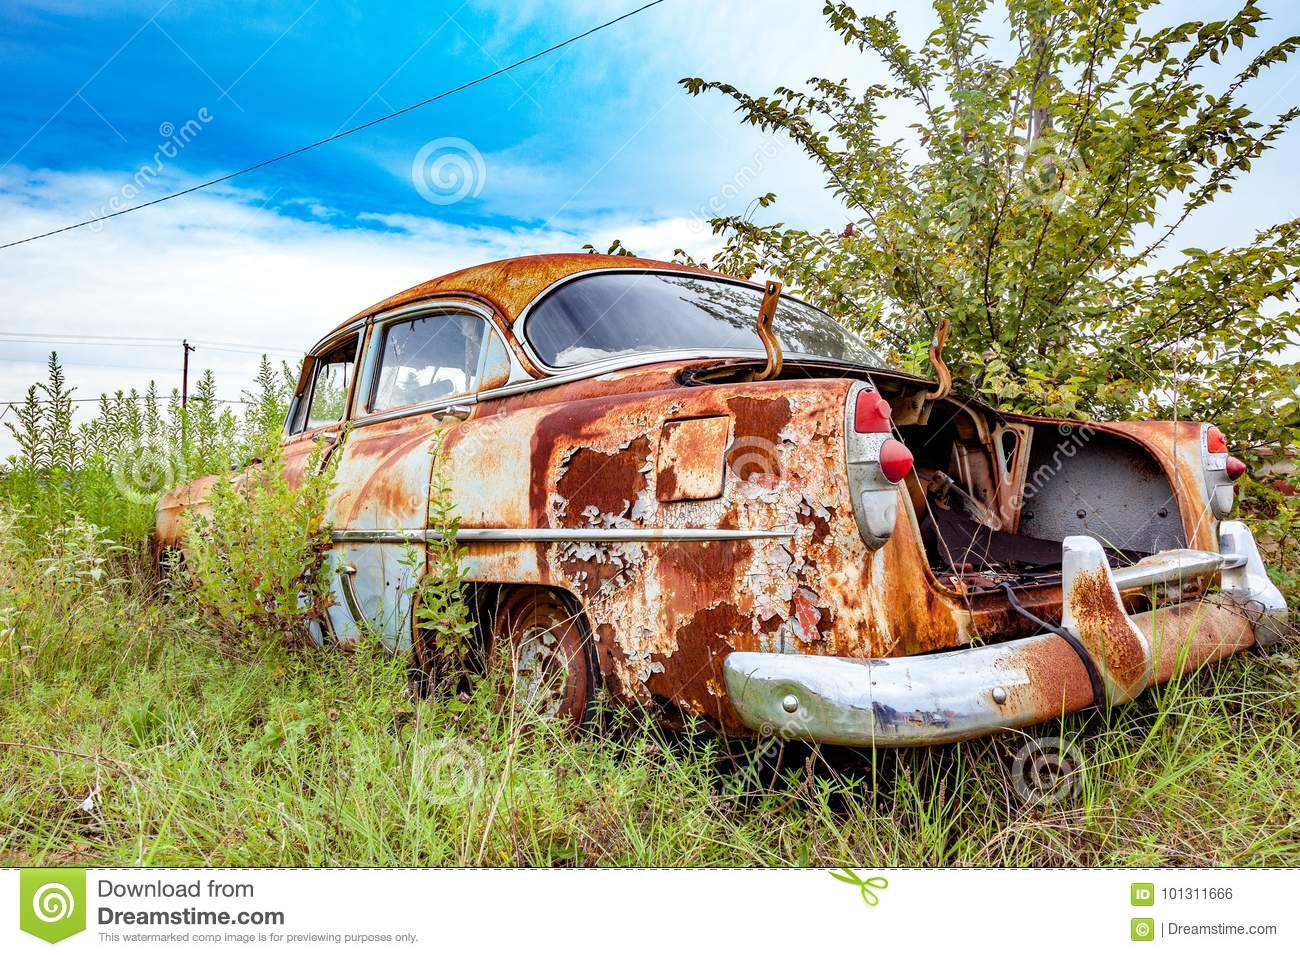 Rusty Salvage Yard Car stock photo  Image of morning - 101311666